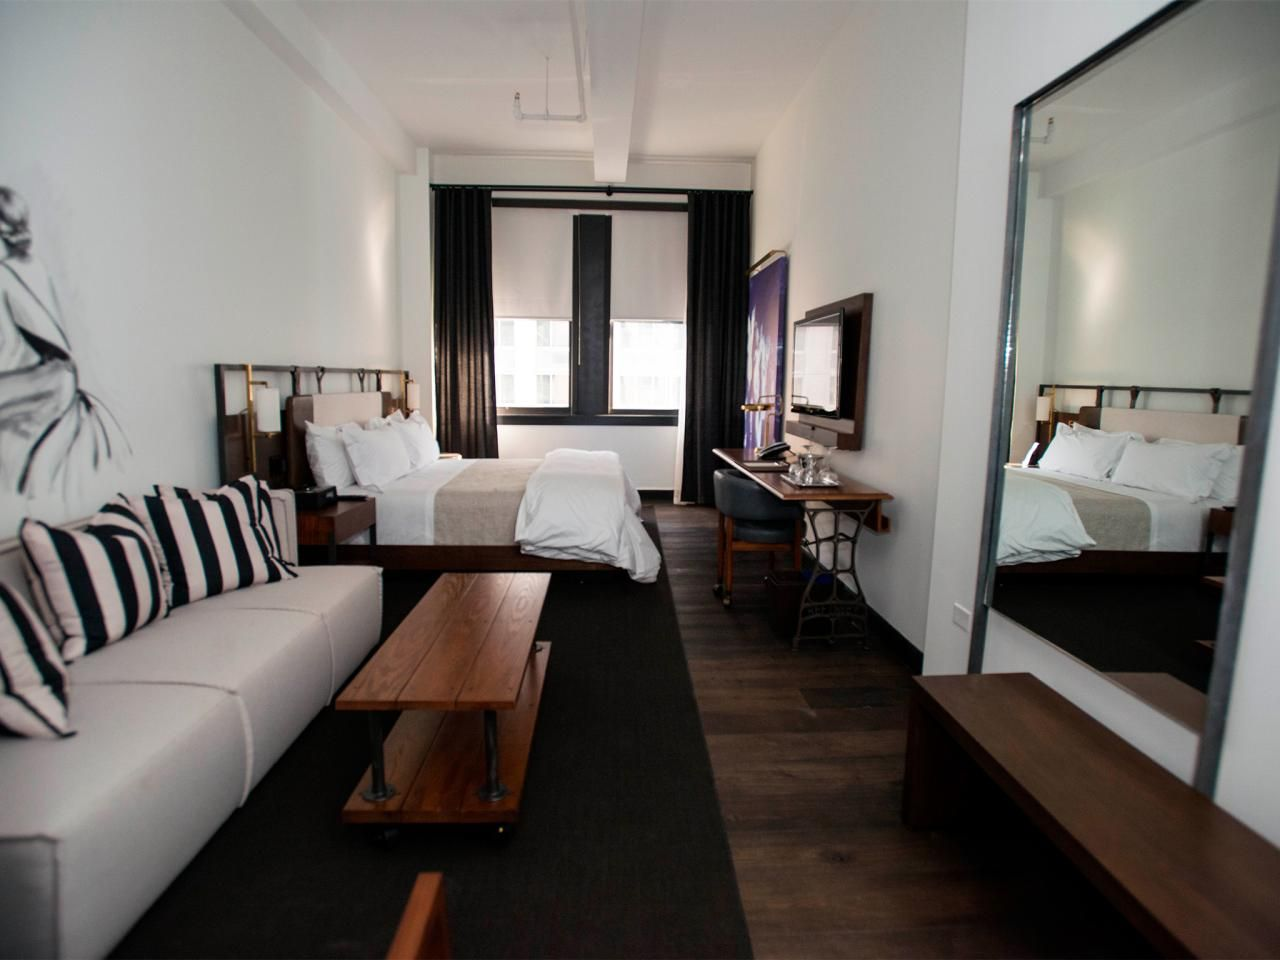 Refinery Hotel New York City The 10 Best Boutique Hotels Travelchannel